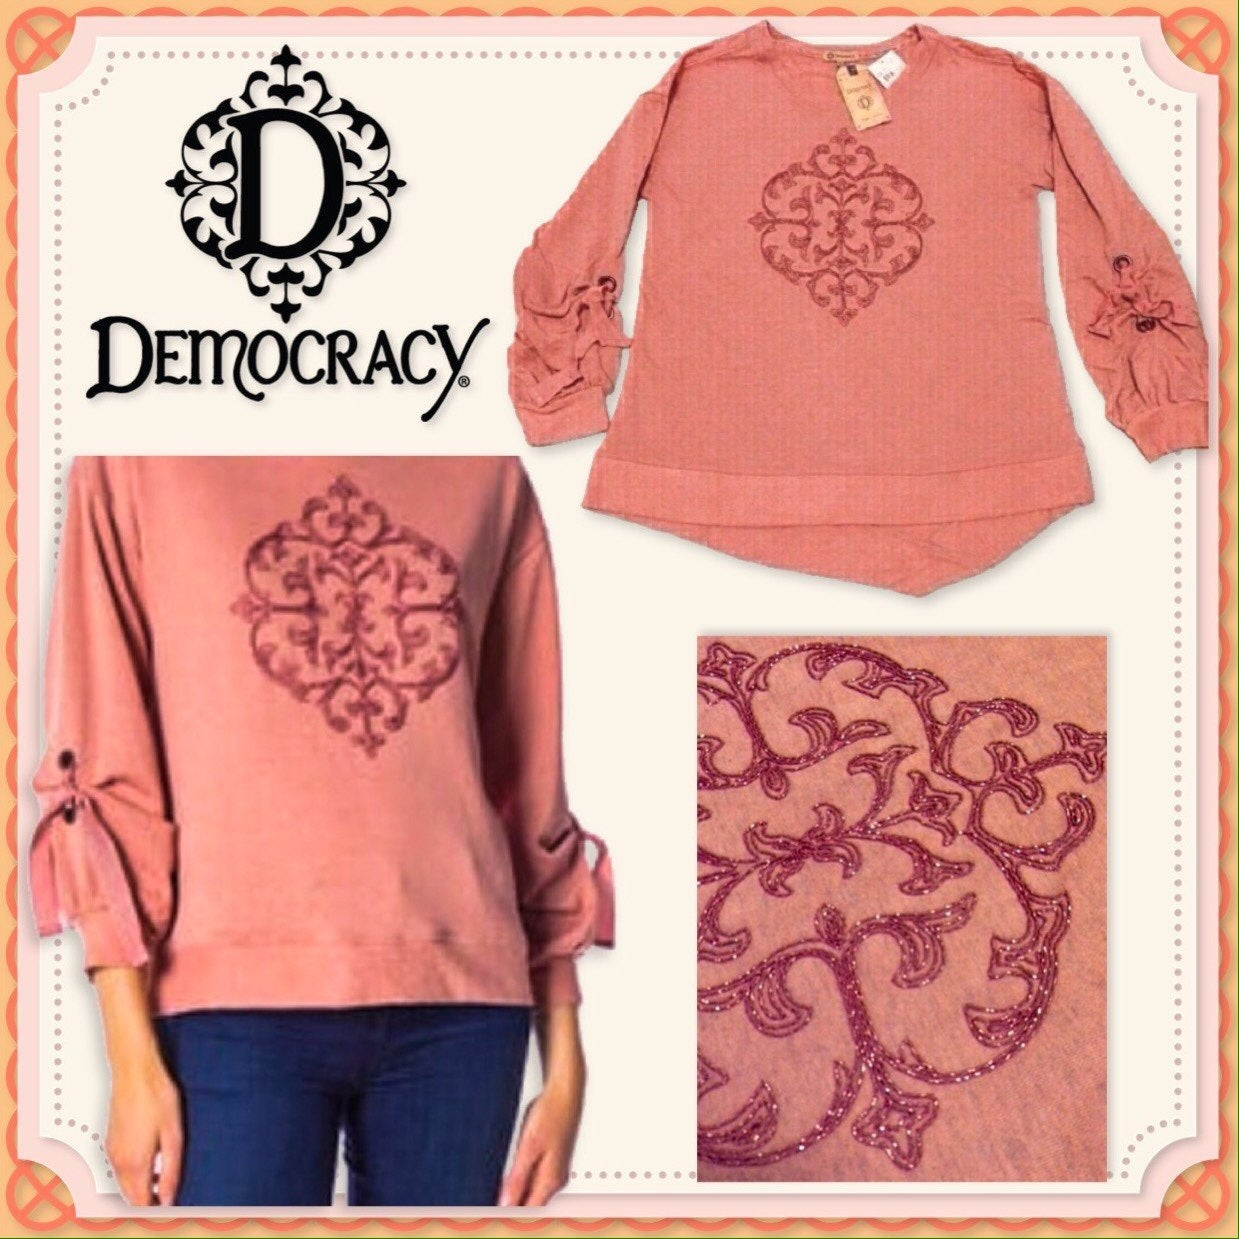 New DEMOCRACY Embroider Knit Top w/Ties